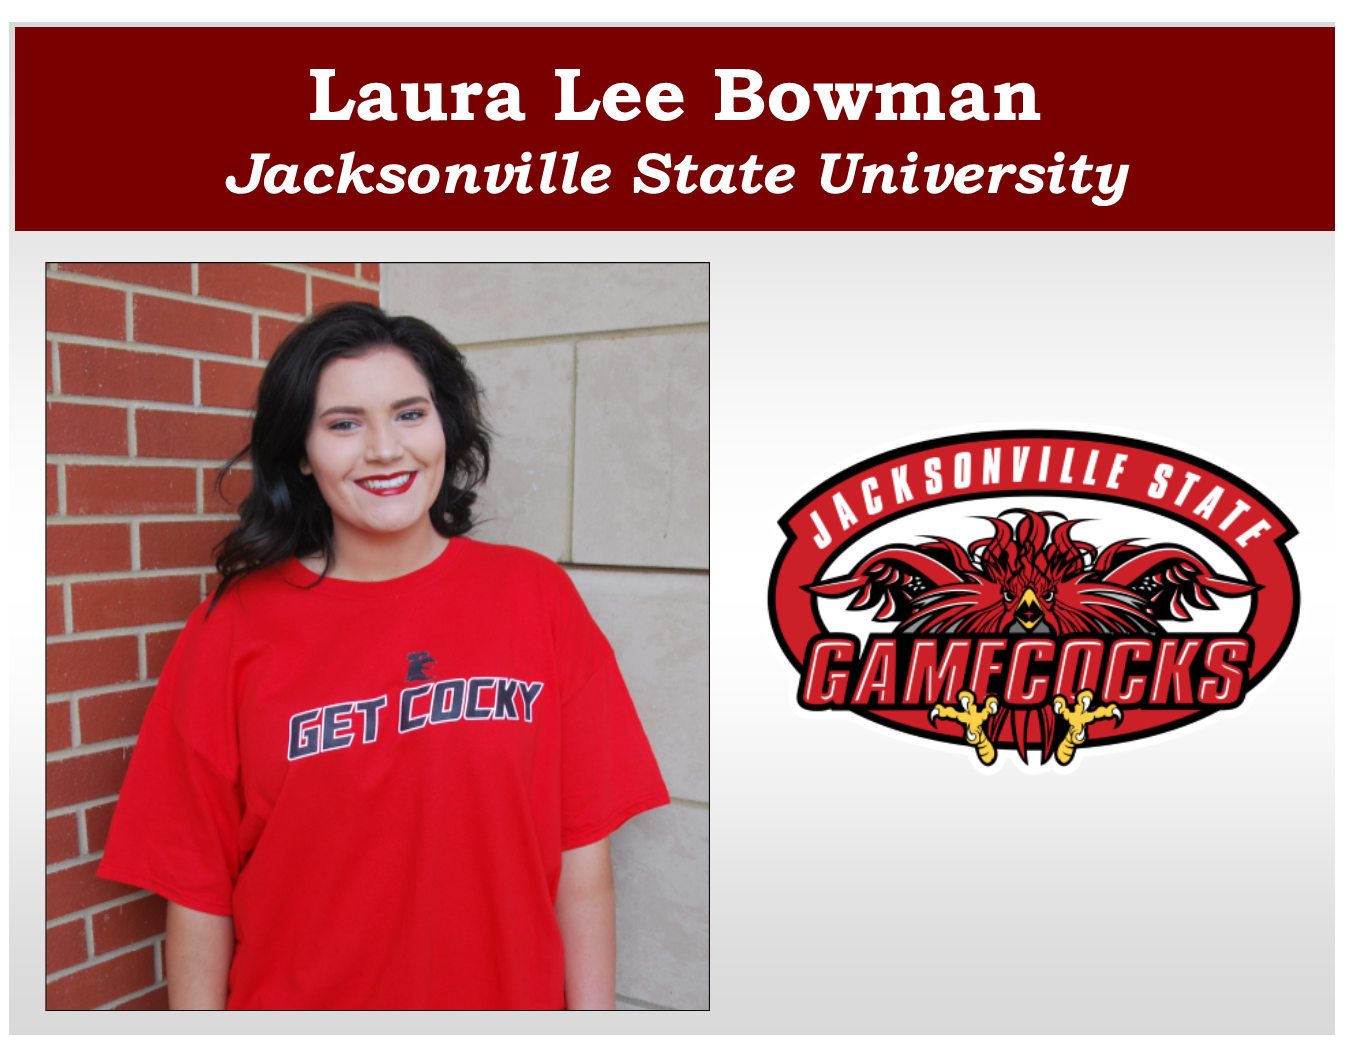 Laura Lee Bowman